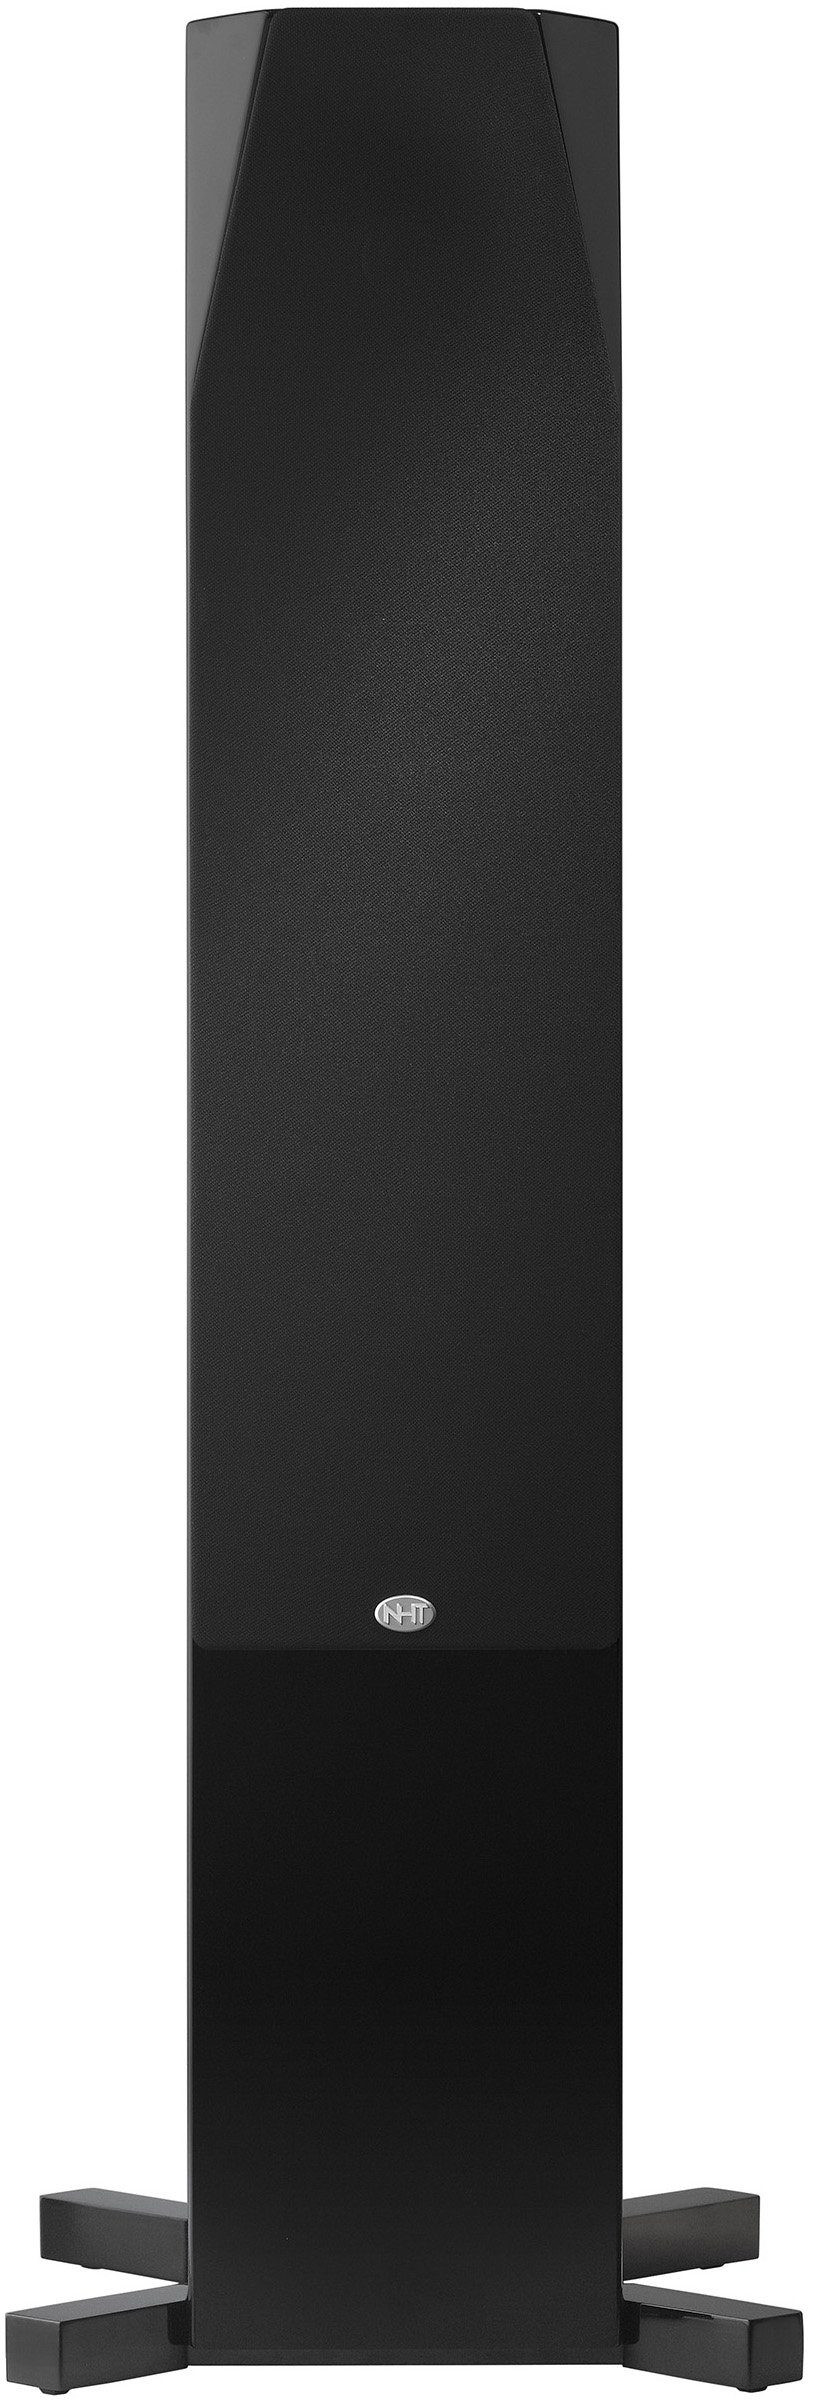 NHT C Series C-4 Floor-Standing 4-Way Tower Speaker (Single) - High Gloss Black by NHT Audio